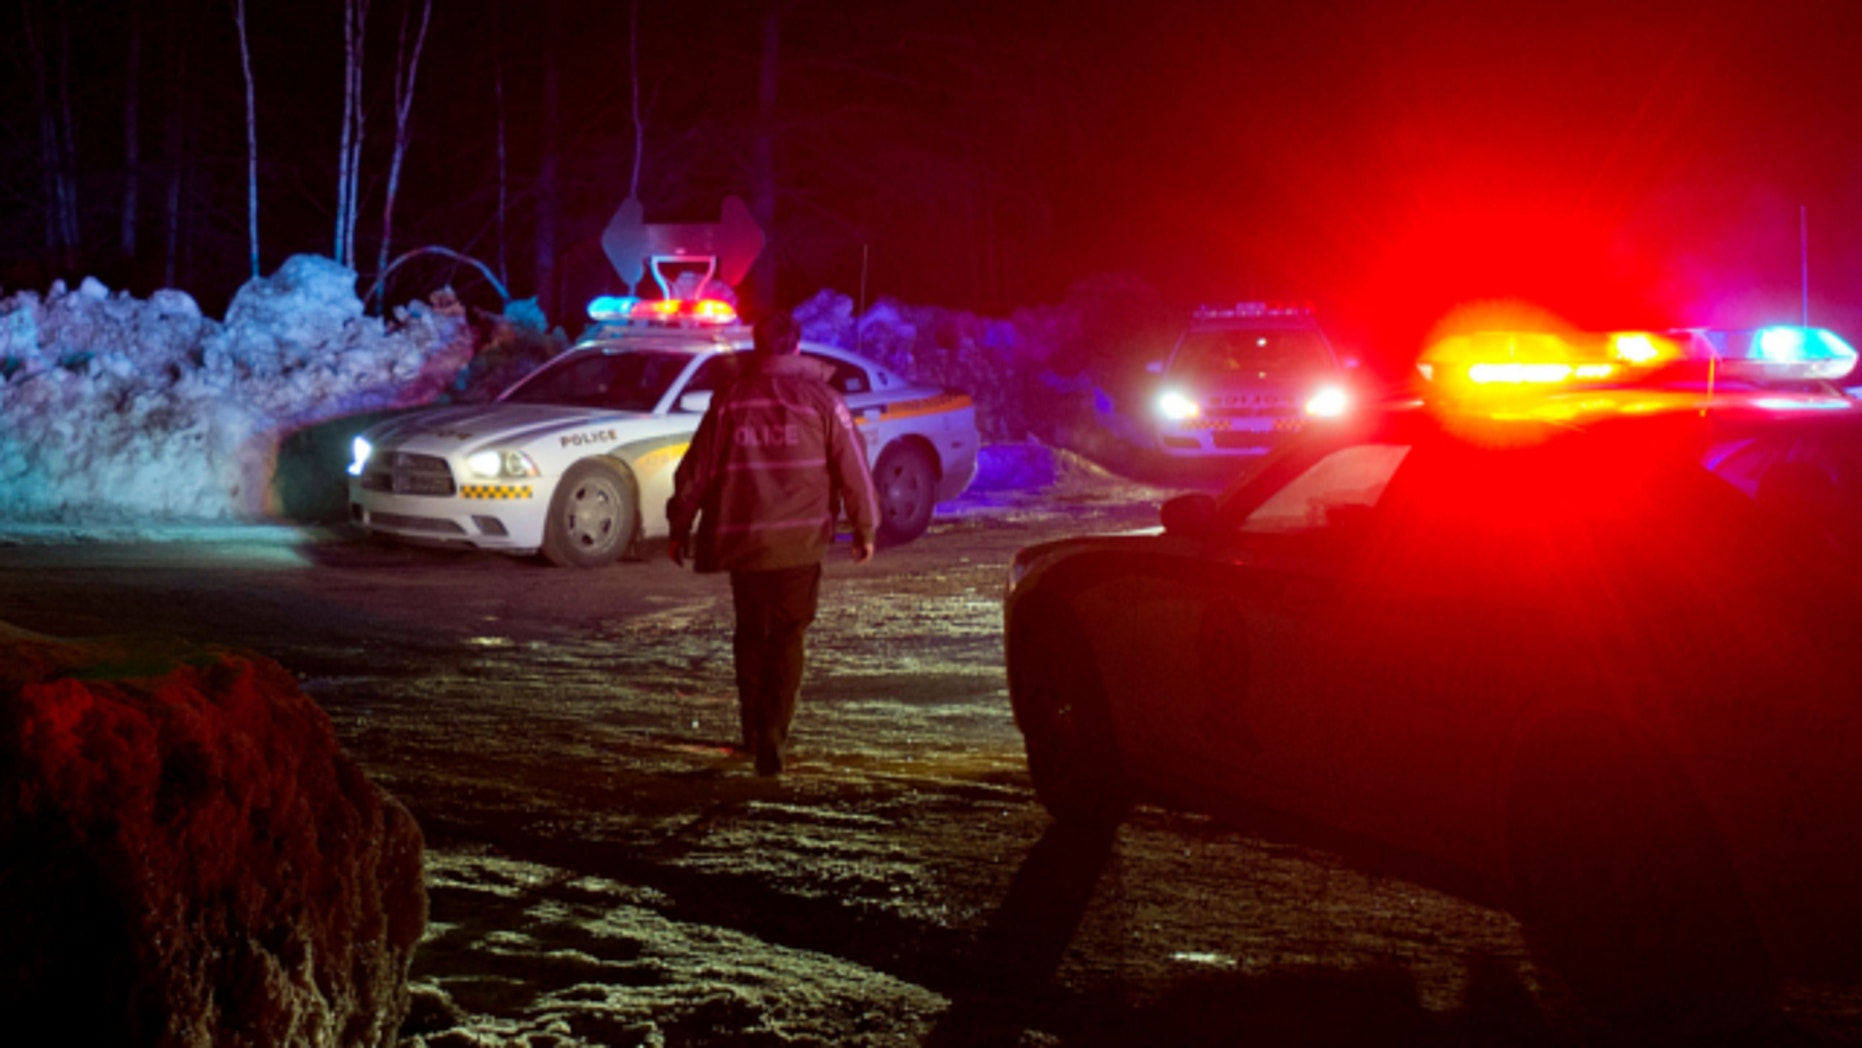 March 17, 2013: Police vehicles block a road just outside the town of Chertsey, Quebec, during a search for escaped prisoners.